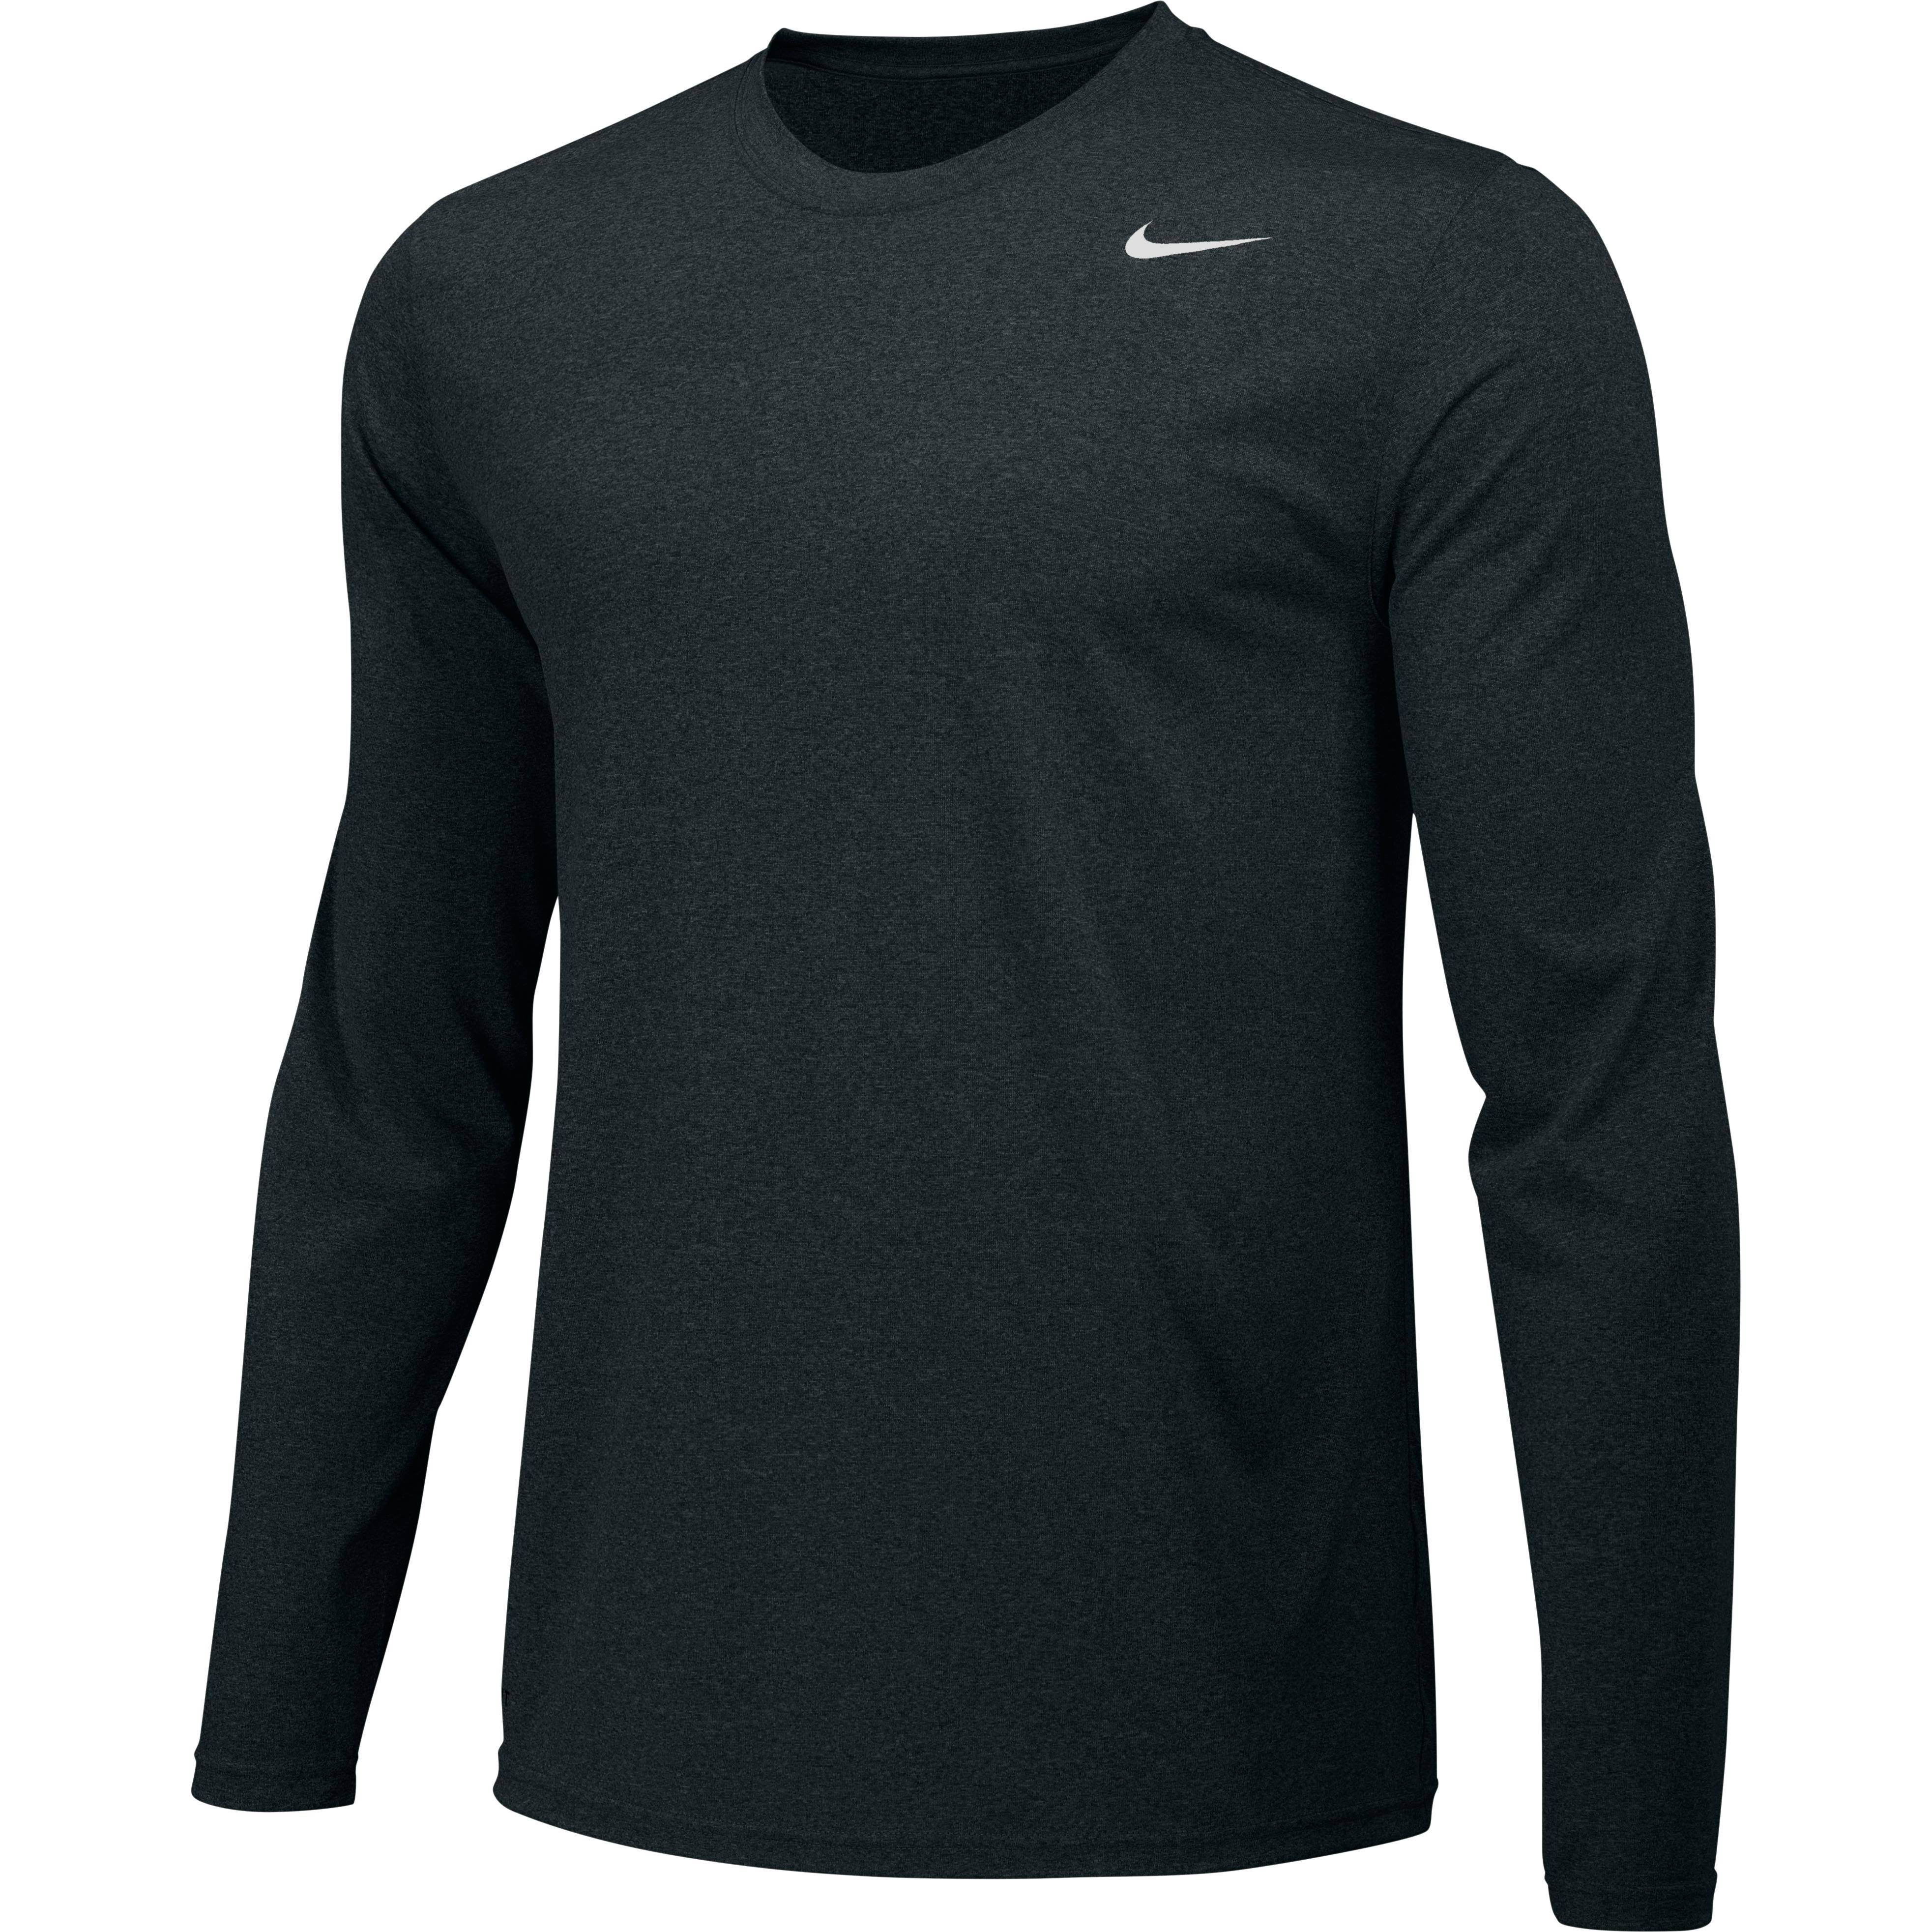 Nike Legend Long Sleeve Poly Top - Black - S